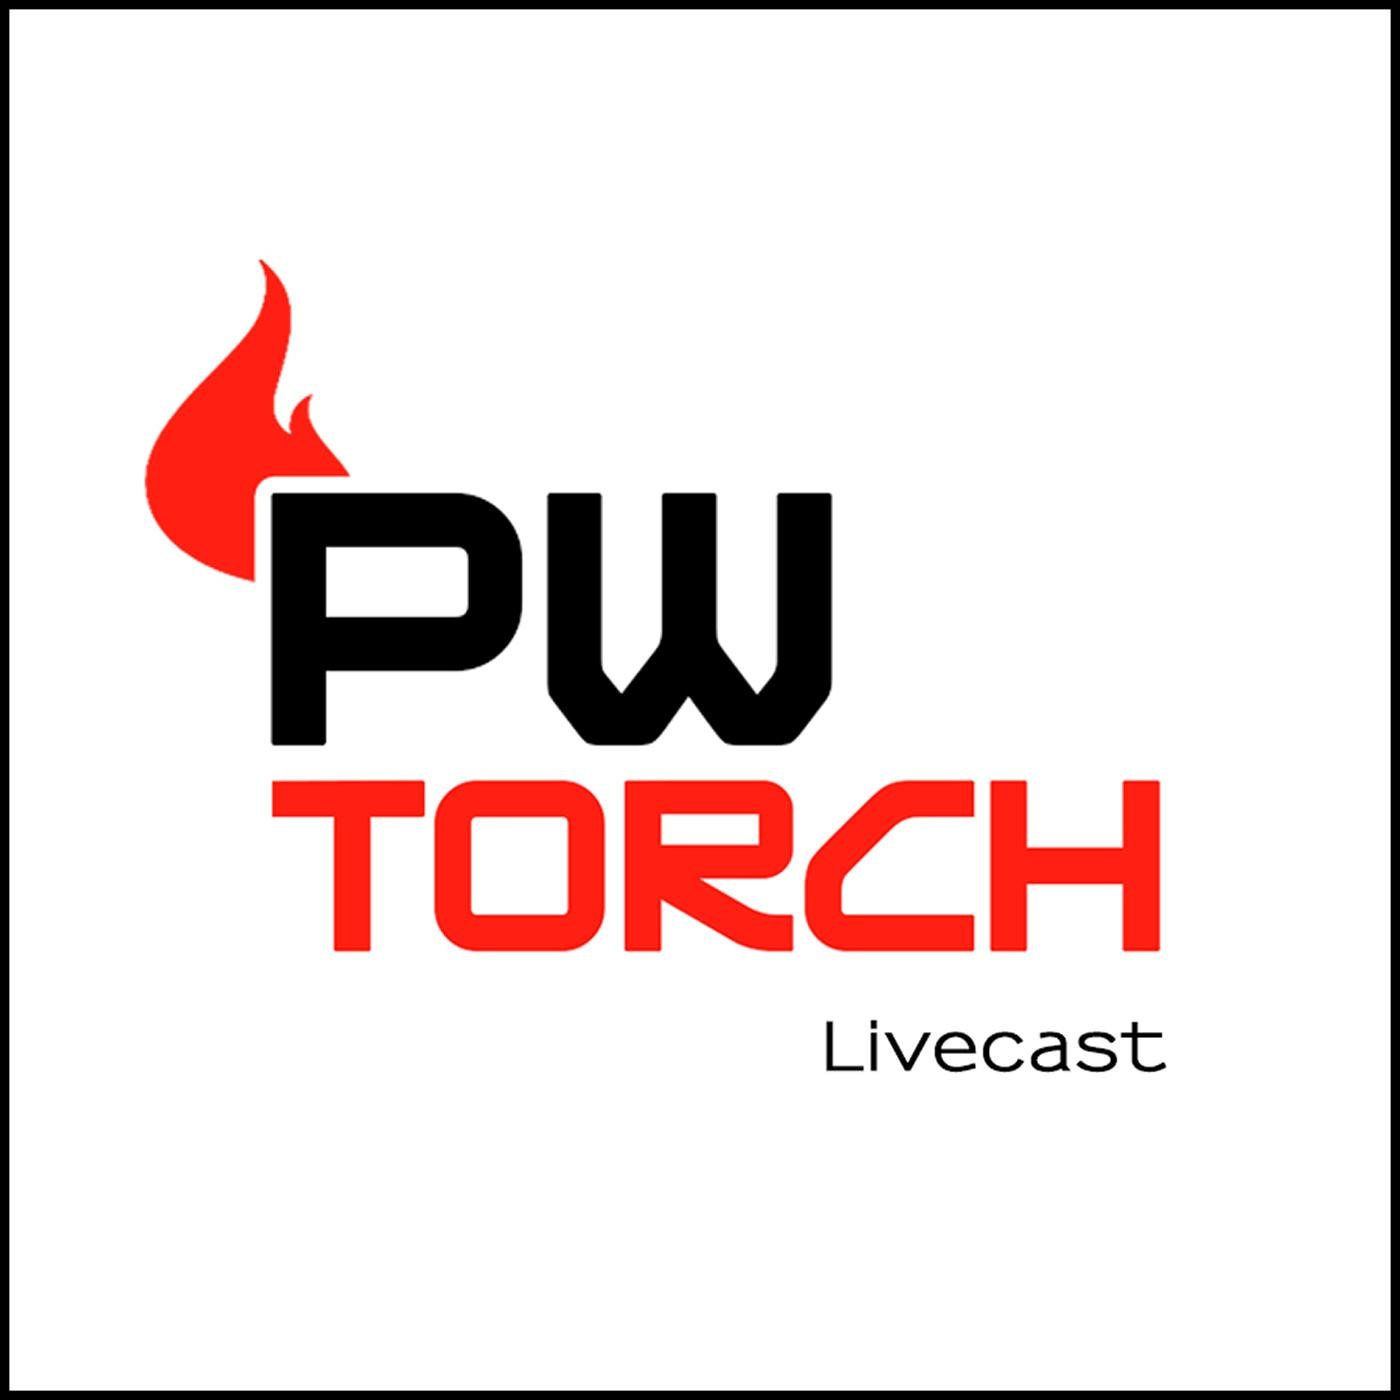 Pro Wrestling Torch Livecast